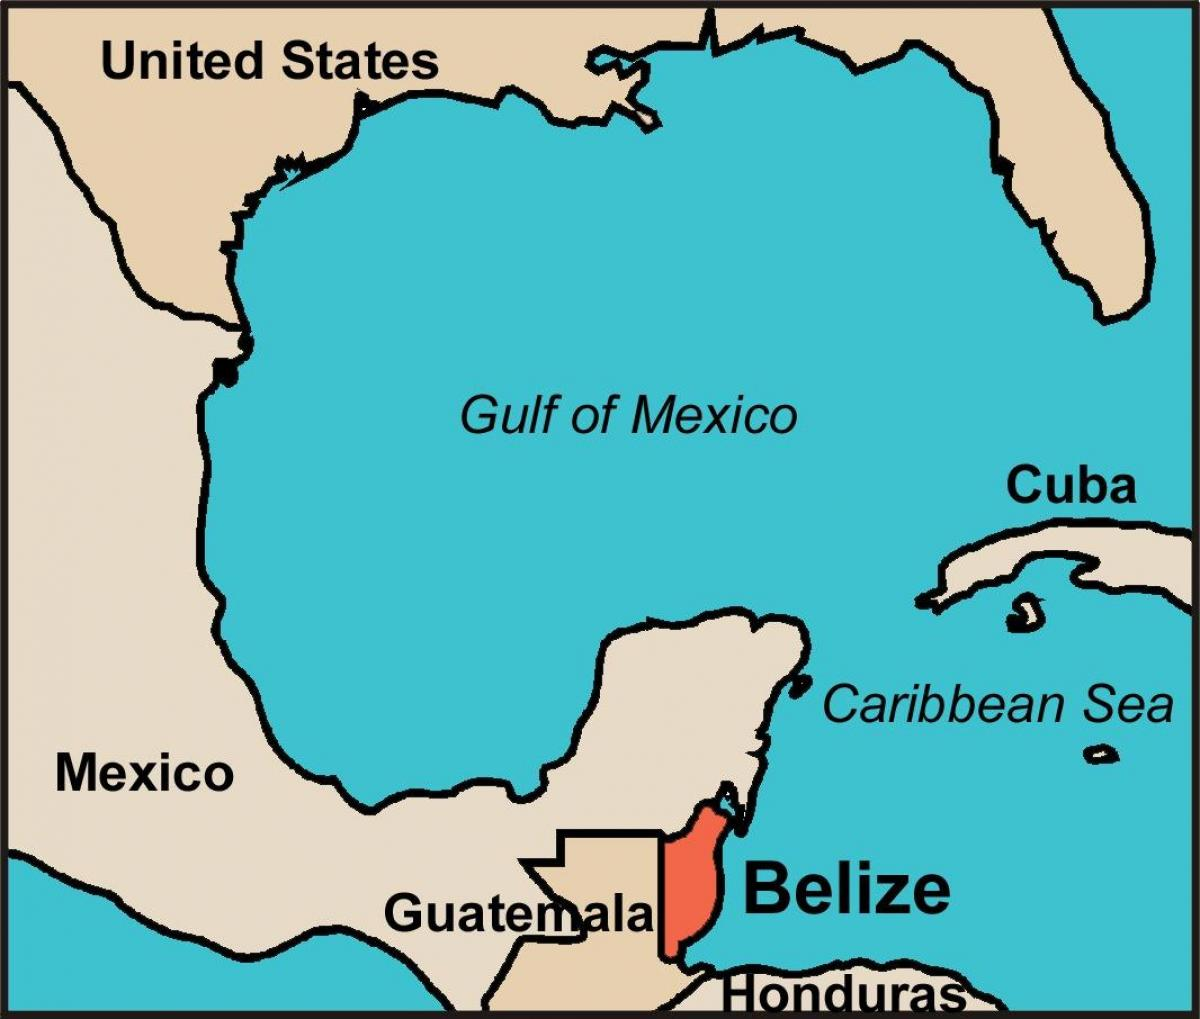 Map of Belize - Belize country map (Central America - Americas) Maps Of Belize Central America on map of grenada, map of caribbean central america, map of gambia, map of mongolia, map of central america states, map of honduras central america, map showing belize, map of united state of america, map of bhutan, map of south america, map of mauritius, large map of central america, map of roatan central america, map guatemala central america, belize south america, map of algeria, world map of mexico and central america, map of north and central america, mayan ruins central america, map of zambia,